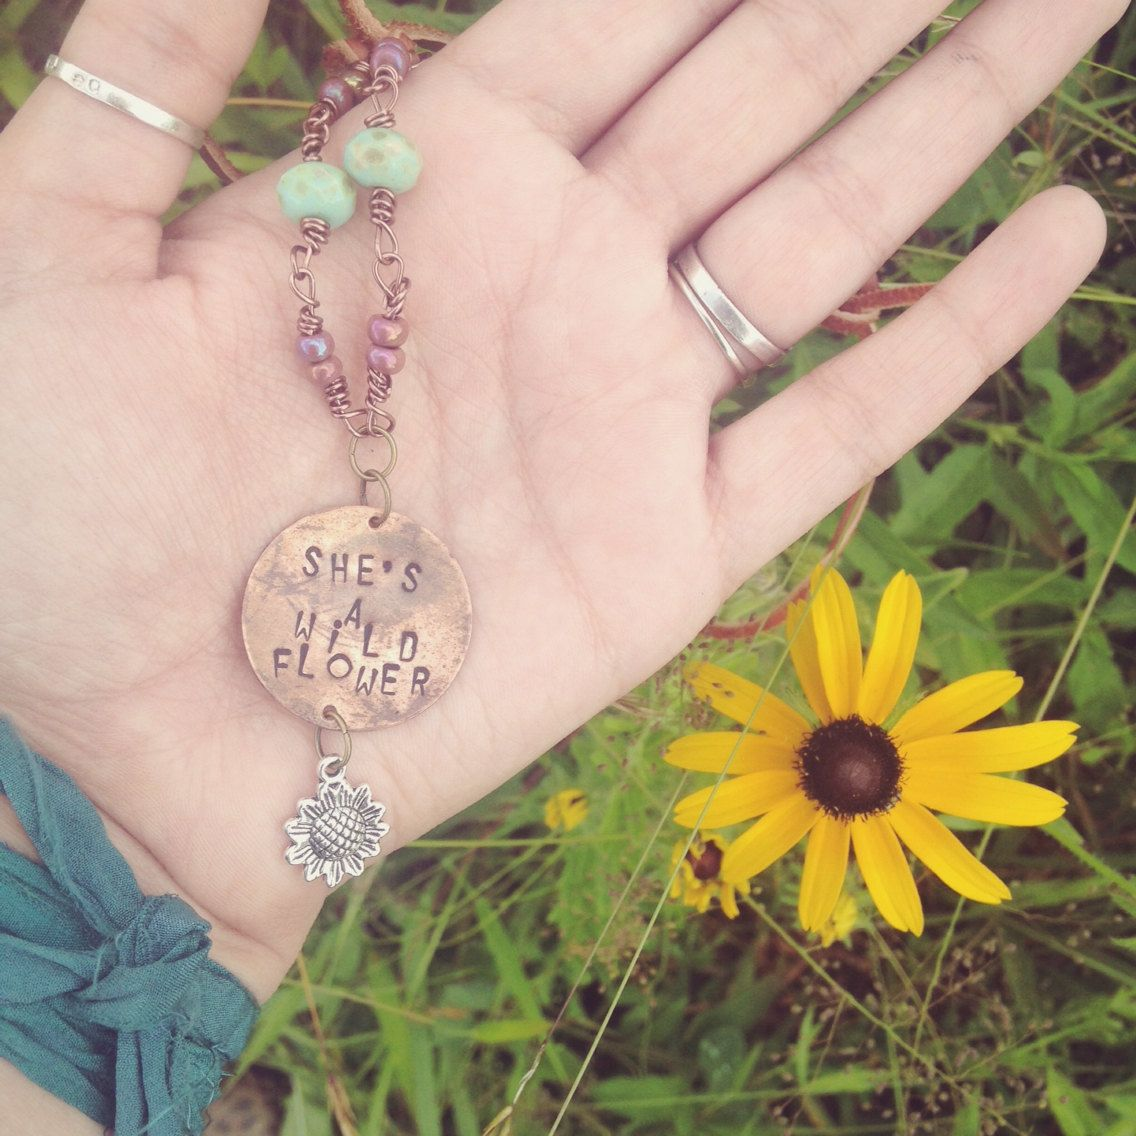 Wildflower. by whisperedtruths on Etsy